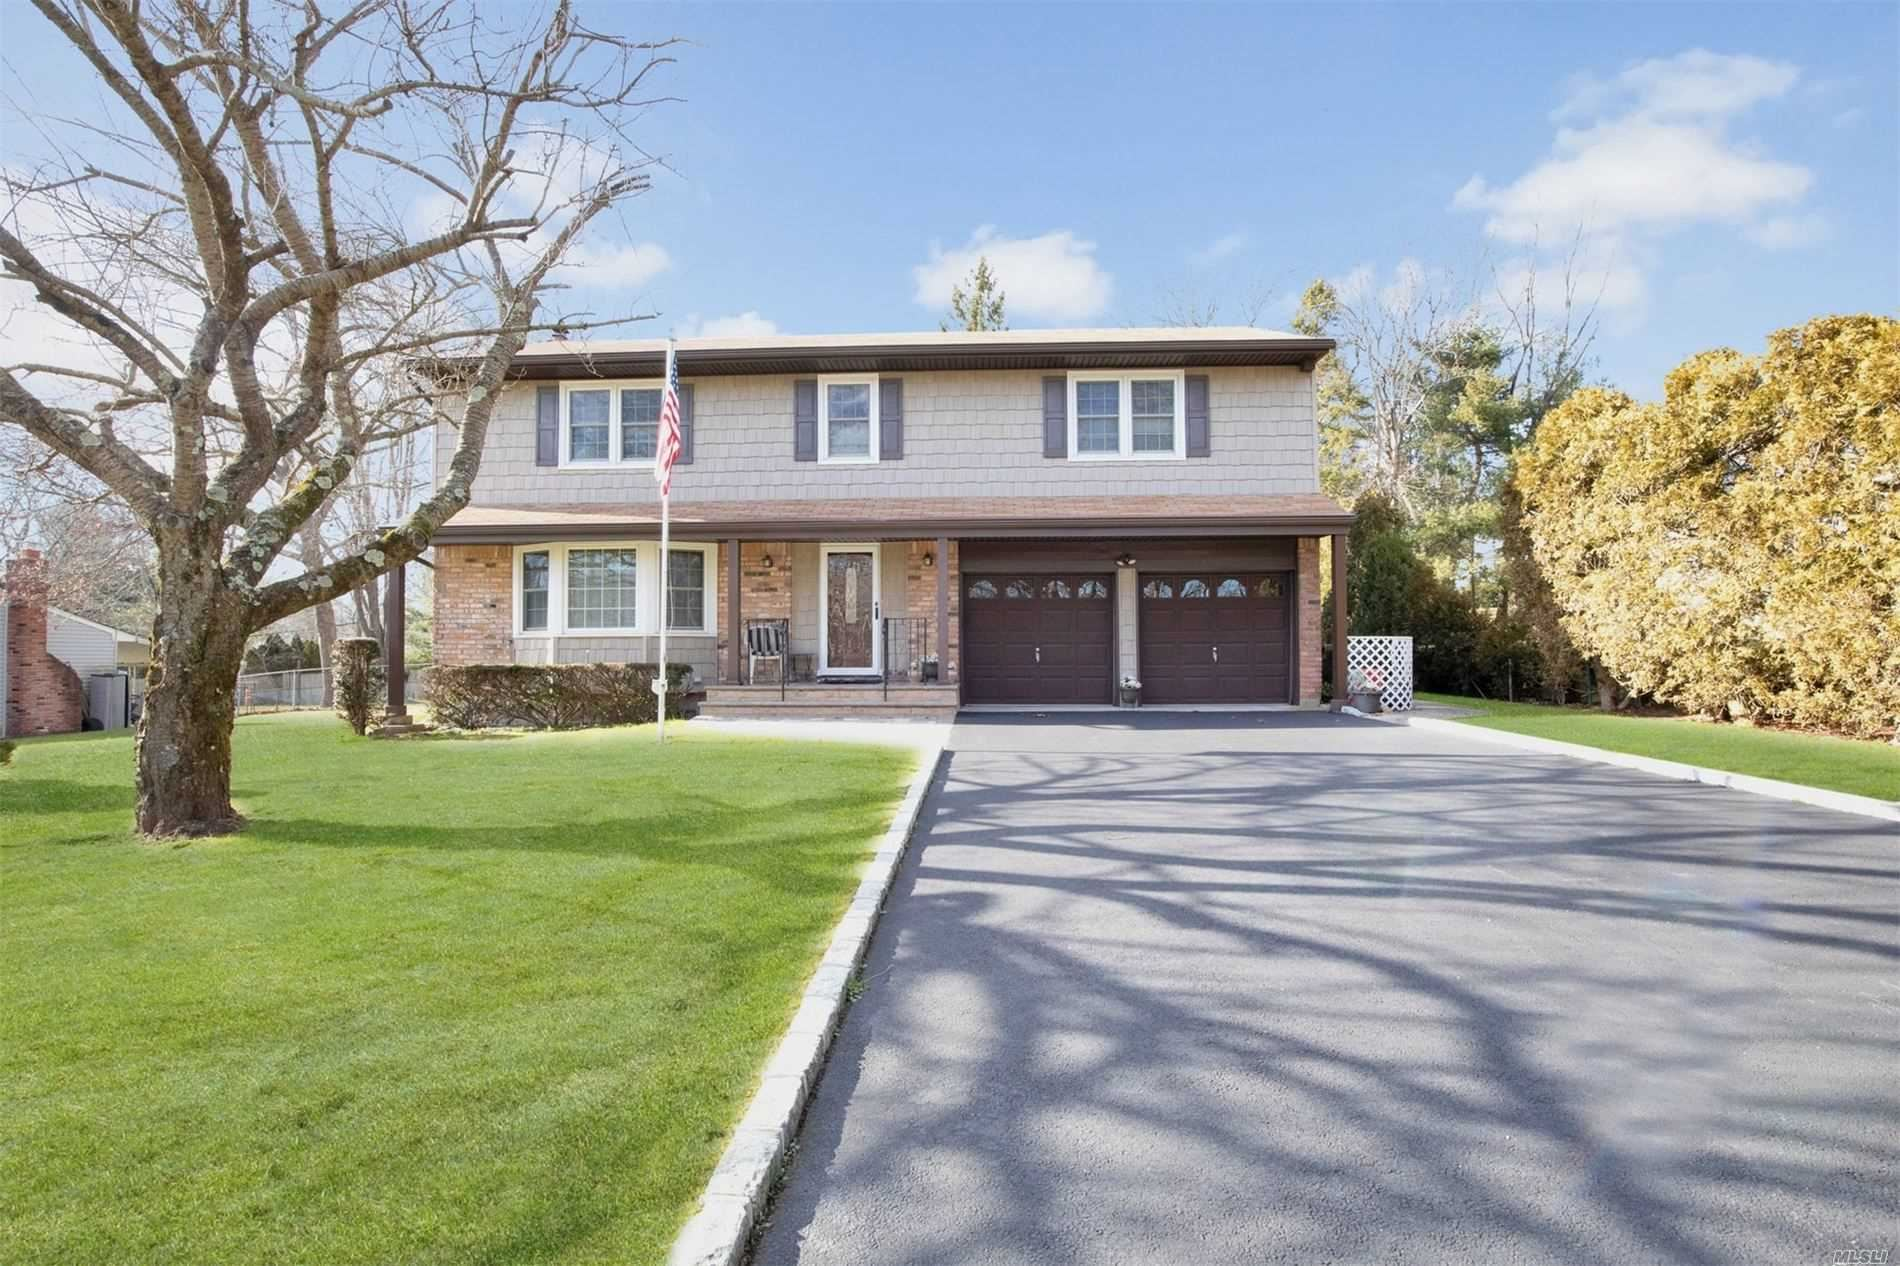 161 N Parkway Drive, Commack, NY 11725 - MLS#: 3204965